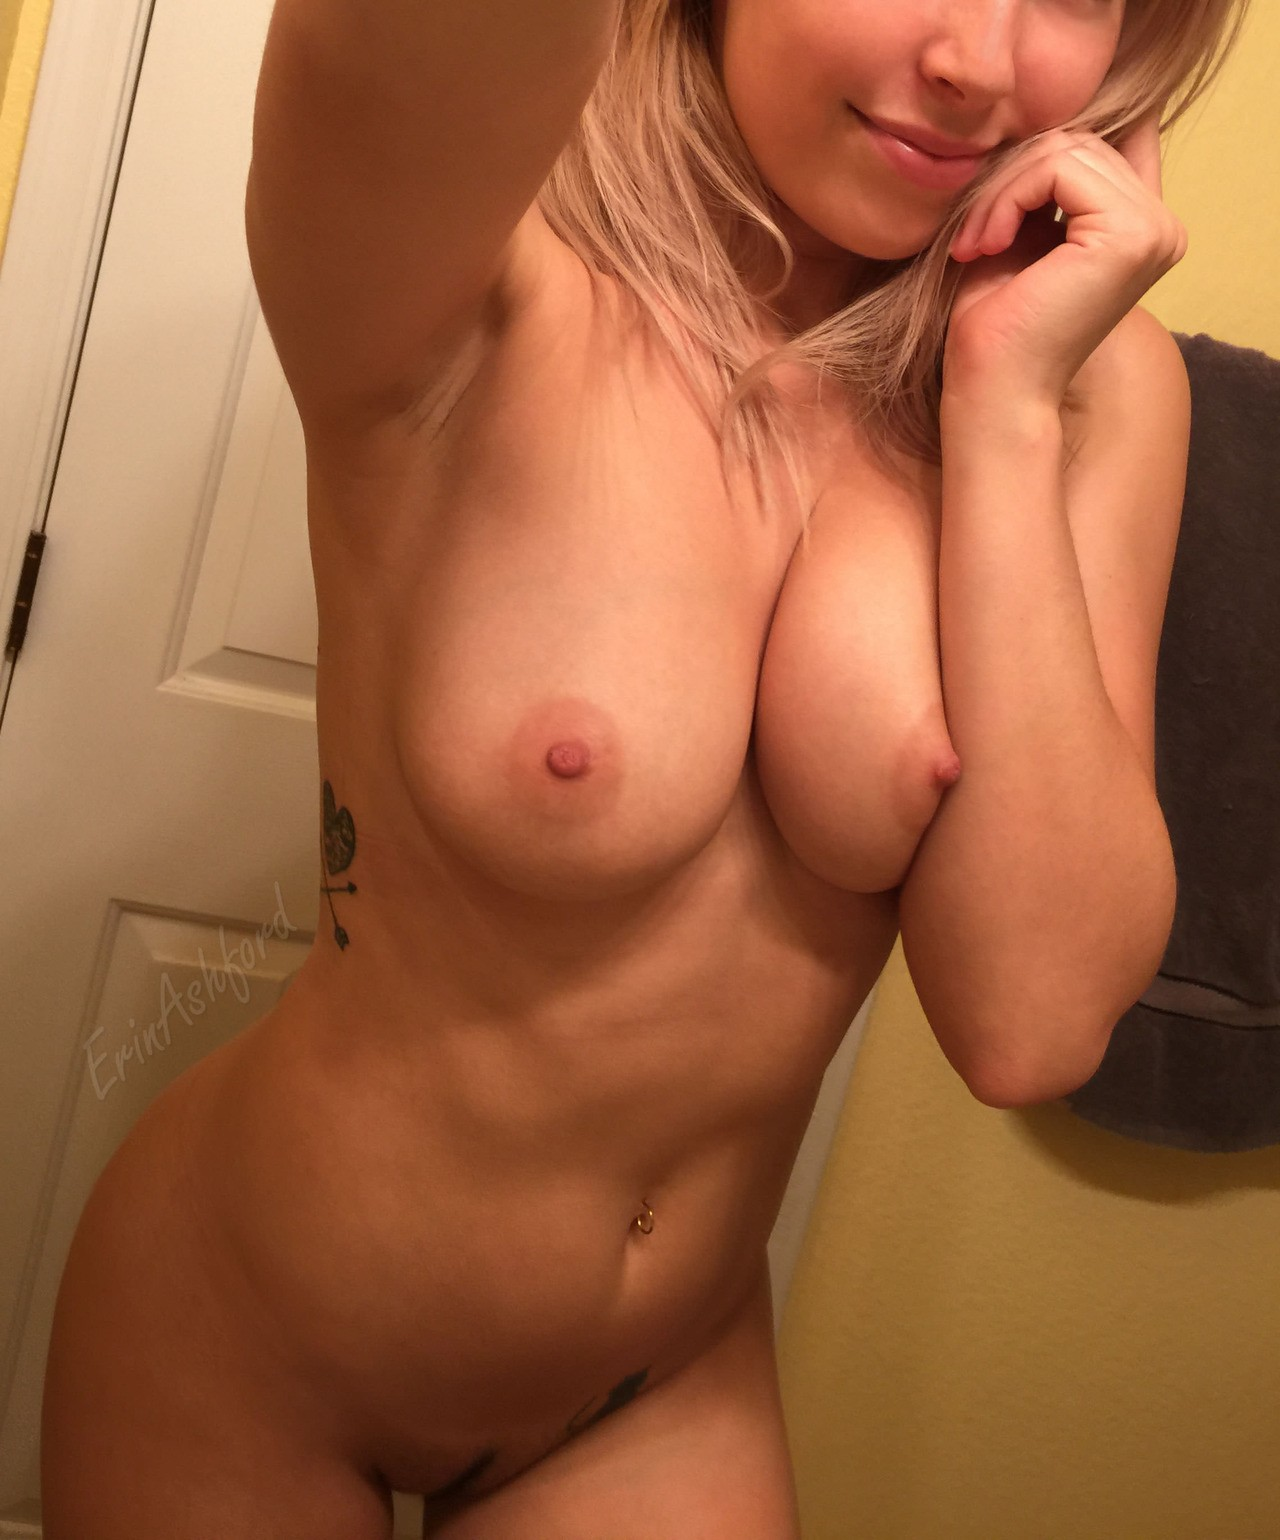 💋💜 No Condom only Cock Fuck me right now   💋💜